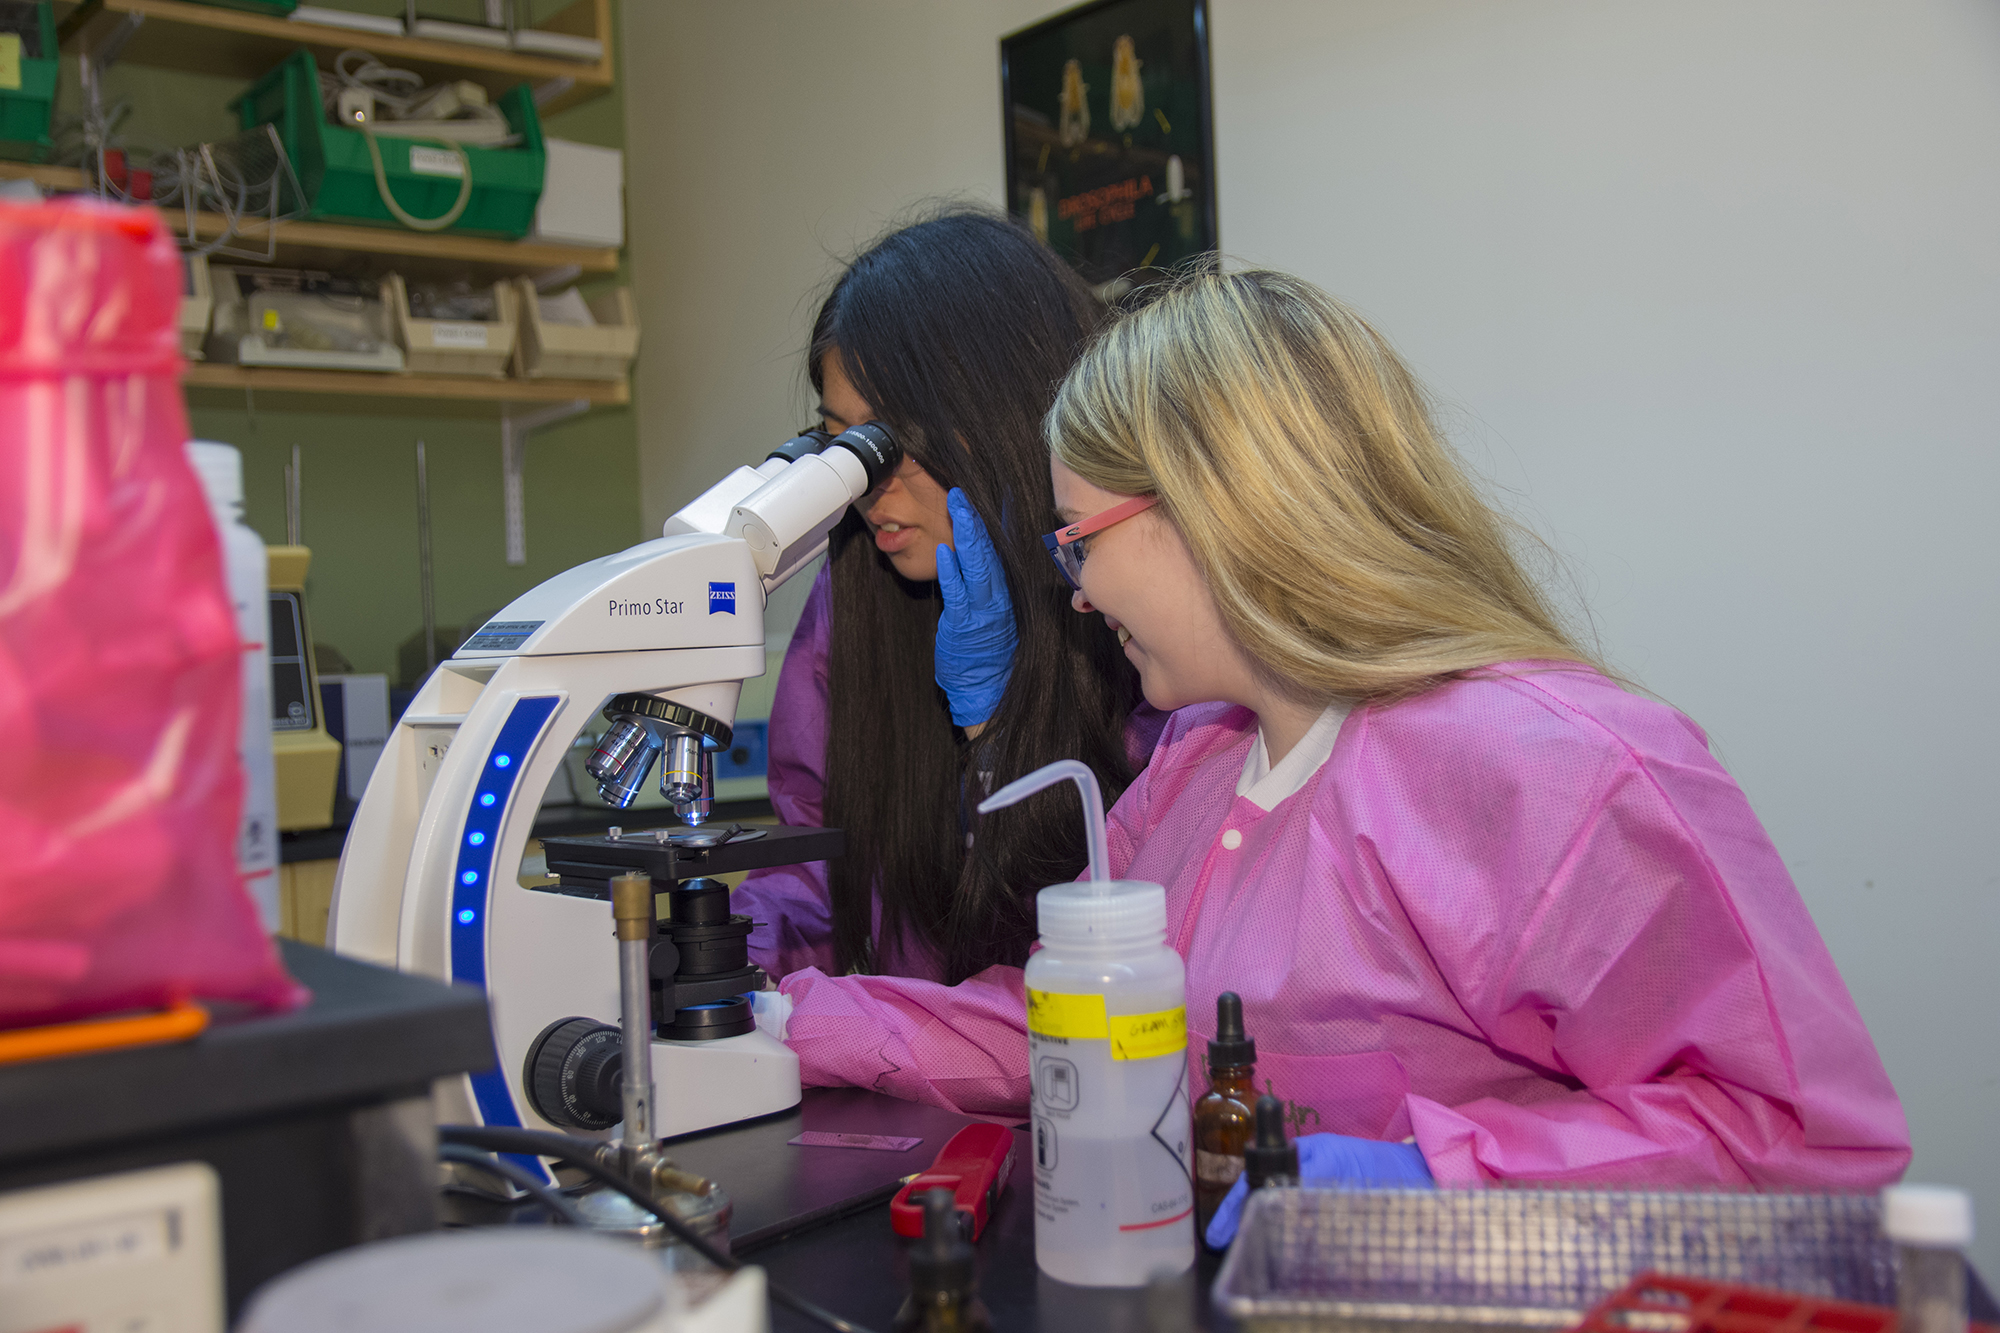 Students looking through a microscope in a lab.